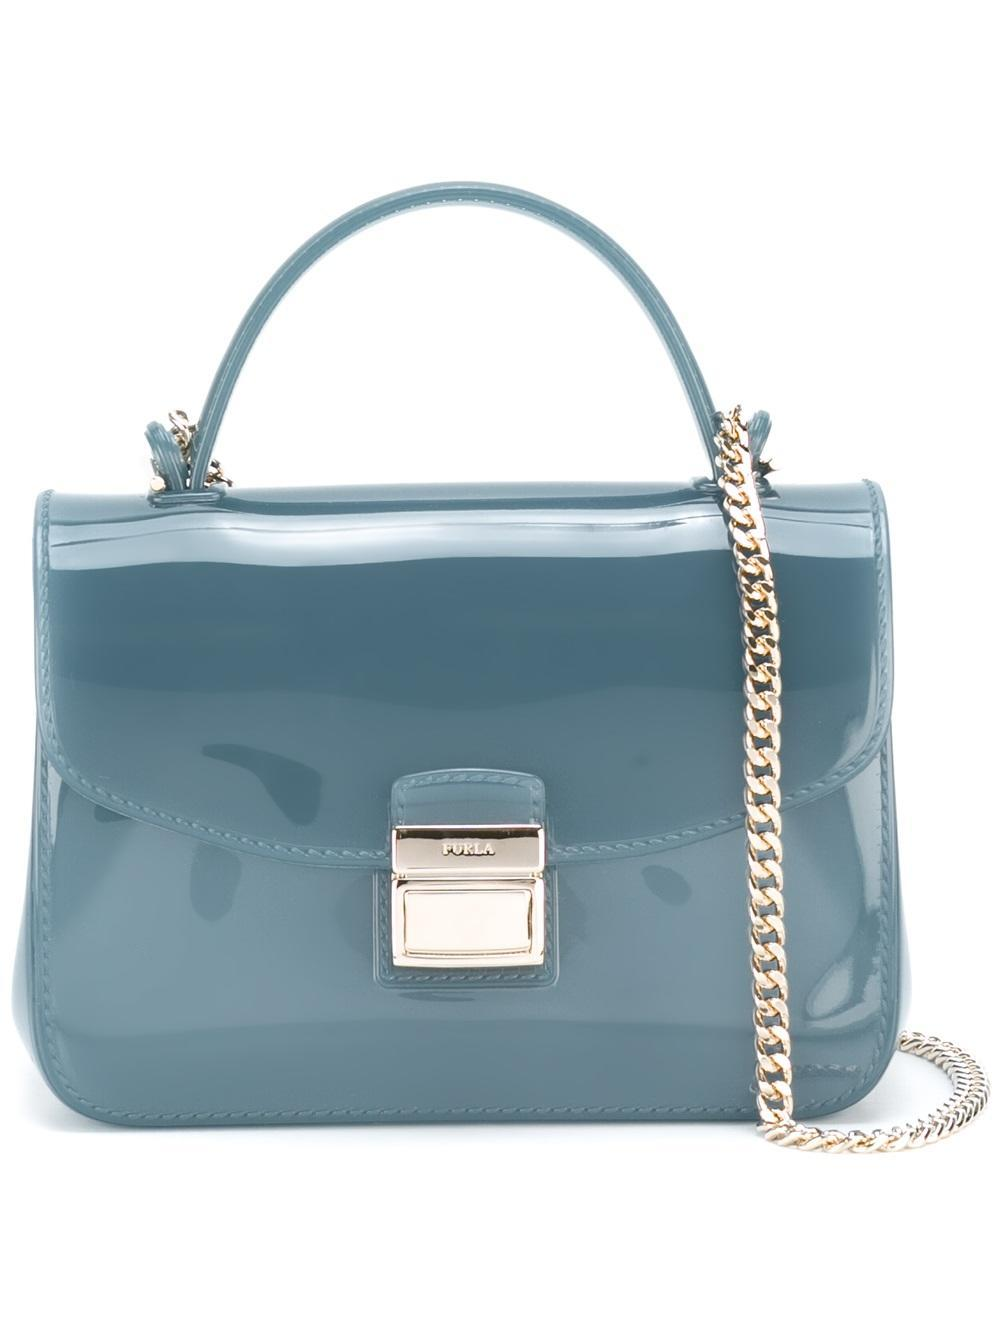 Lyst - Furla Mini Candy Sugar Crossbody Bag in Blue